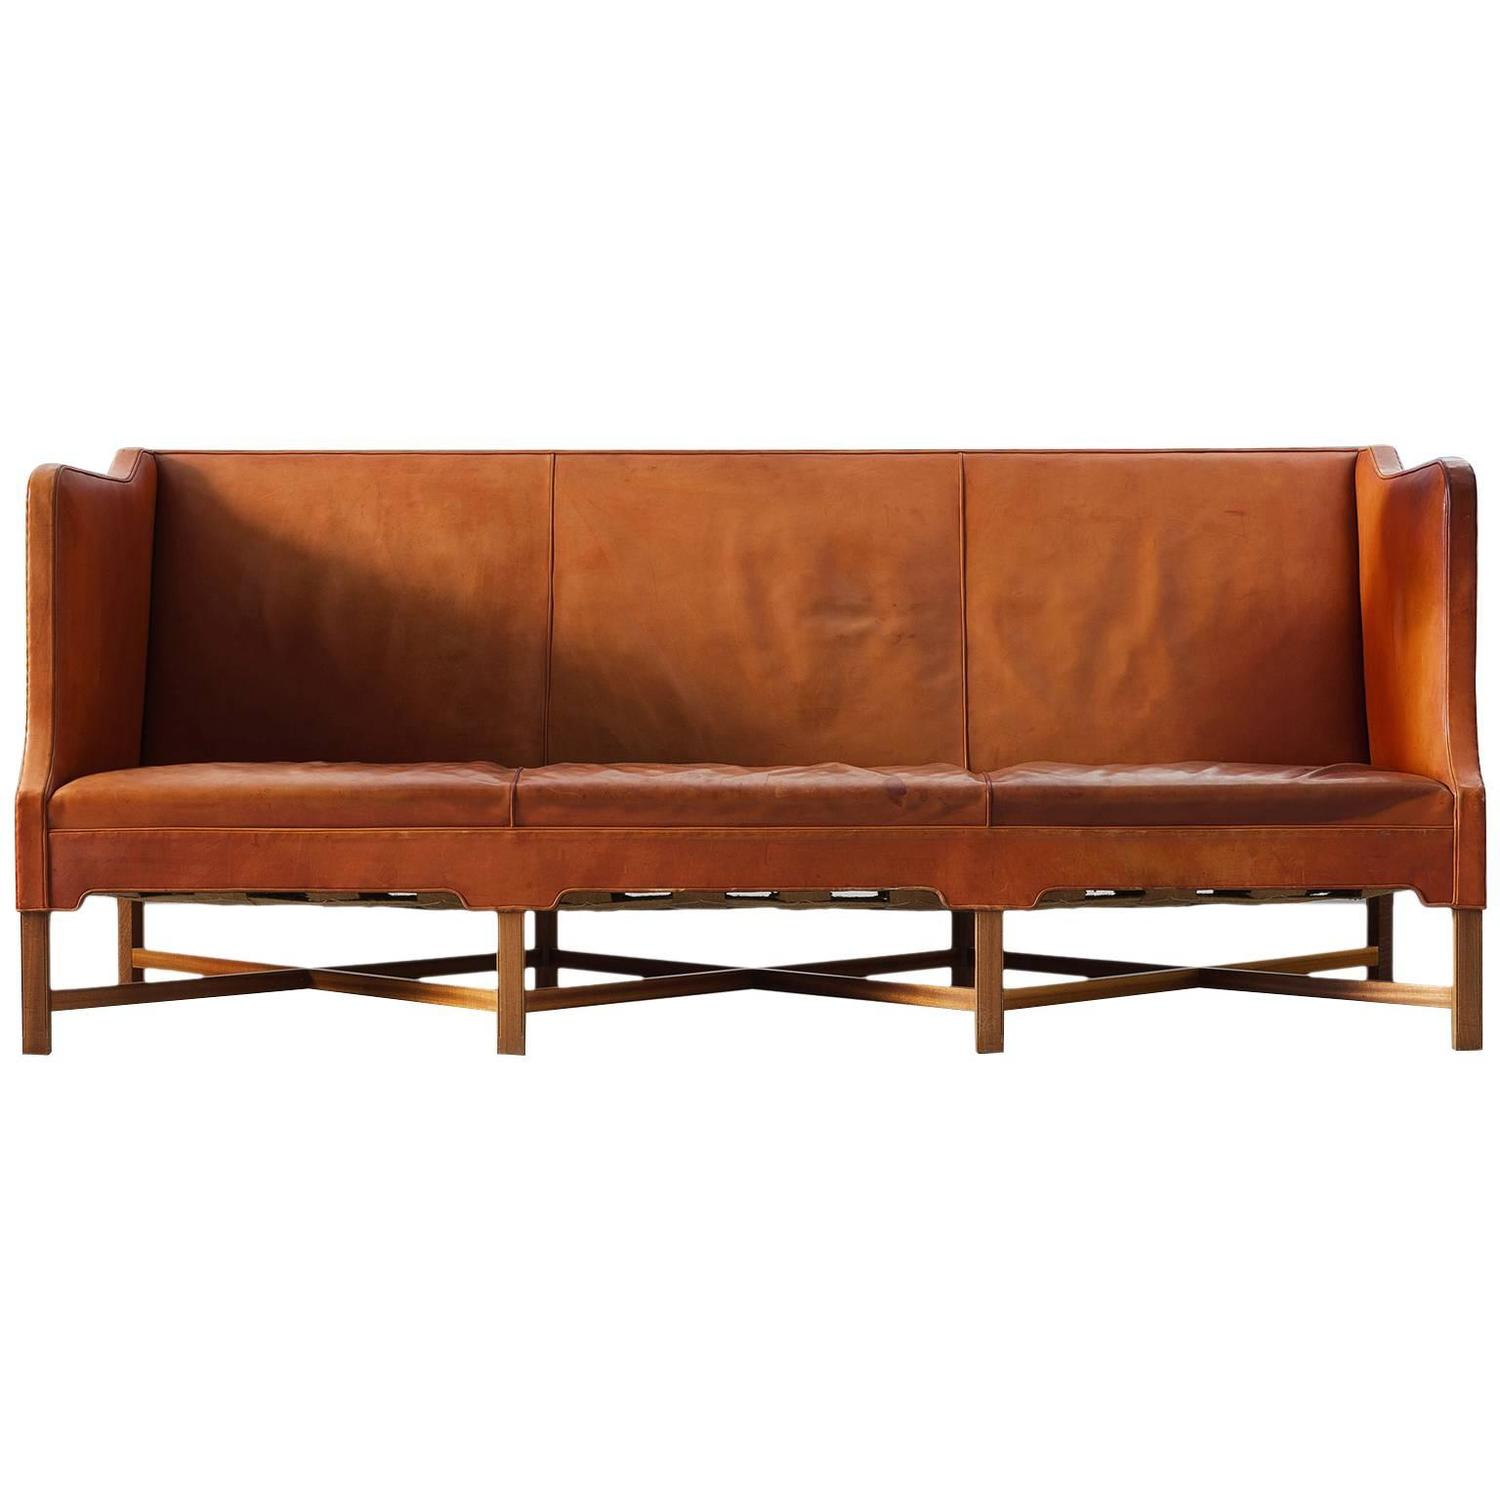 kaare klint early sofa in cognac leather for rud rasmussen for sale at 1stdibs. Black Bedroom Furniture Sets. Home Design Ideas